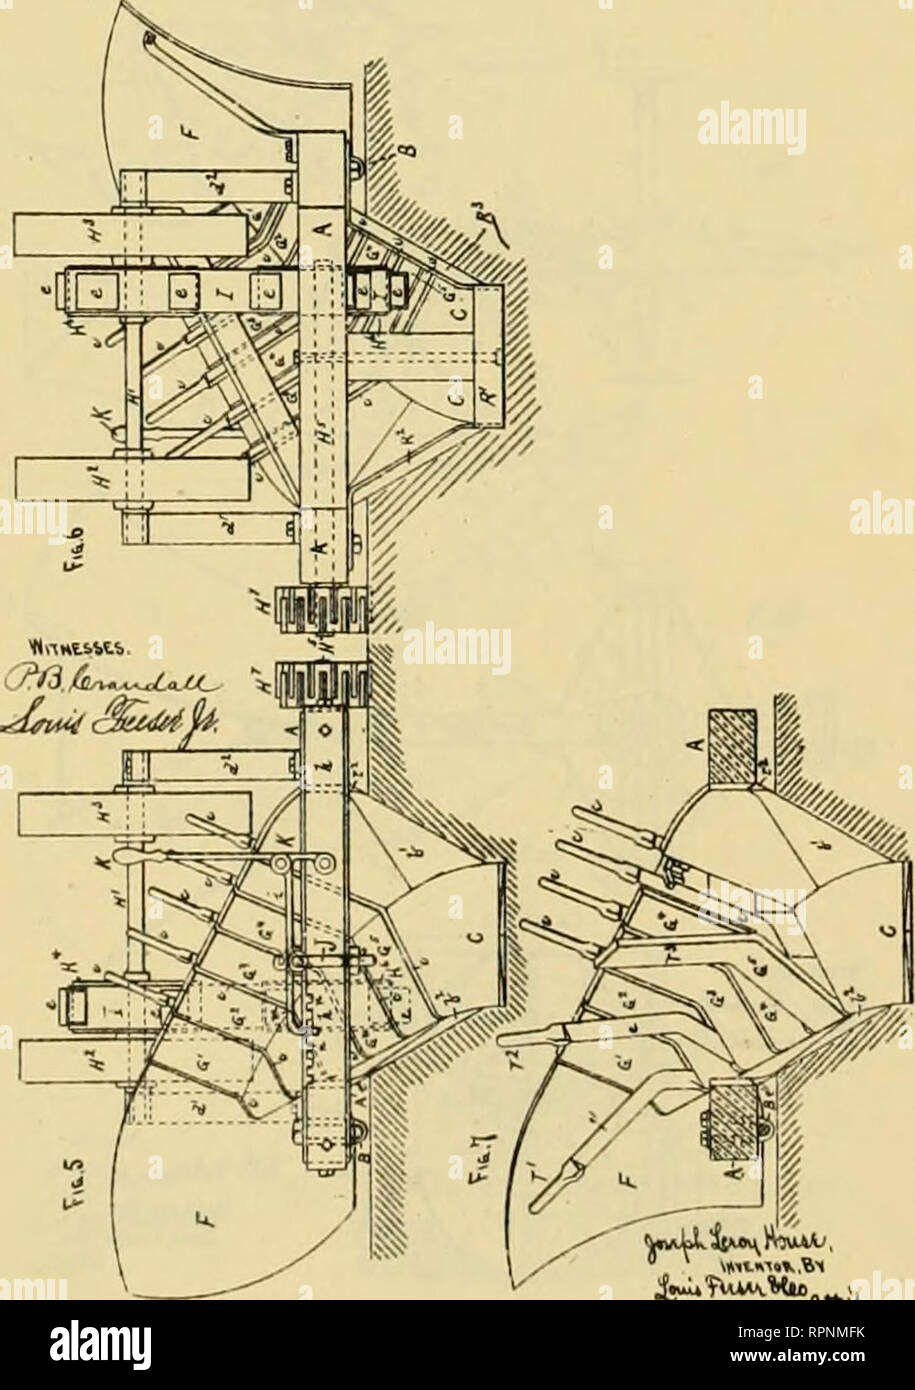 . Allen's digest of plows, with attachments, patented in the United States from A.D. 1789 to January 1883 ... Plows; Patents. No. 242.450. 3 Bbeats—fibeet U. J. L. HOUSE. Ditching Plow. Patented June 7. 1881. -.So Model.i V Snoeti—8beet t. F. A. HILL & M. J. CHUECH. DITOHING 4ND OEADIKO PLOW. No. 268,064. Patented May UL 1882.. Please note that these images are extracted from scanned page images that may have been digitally enhanced for readability - coloration and appearance of these illustrations may not perfectly resemble the original work.. Allen, James T. (James Titus). [Washington, D - Stock Image